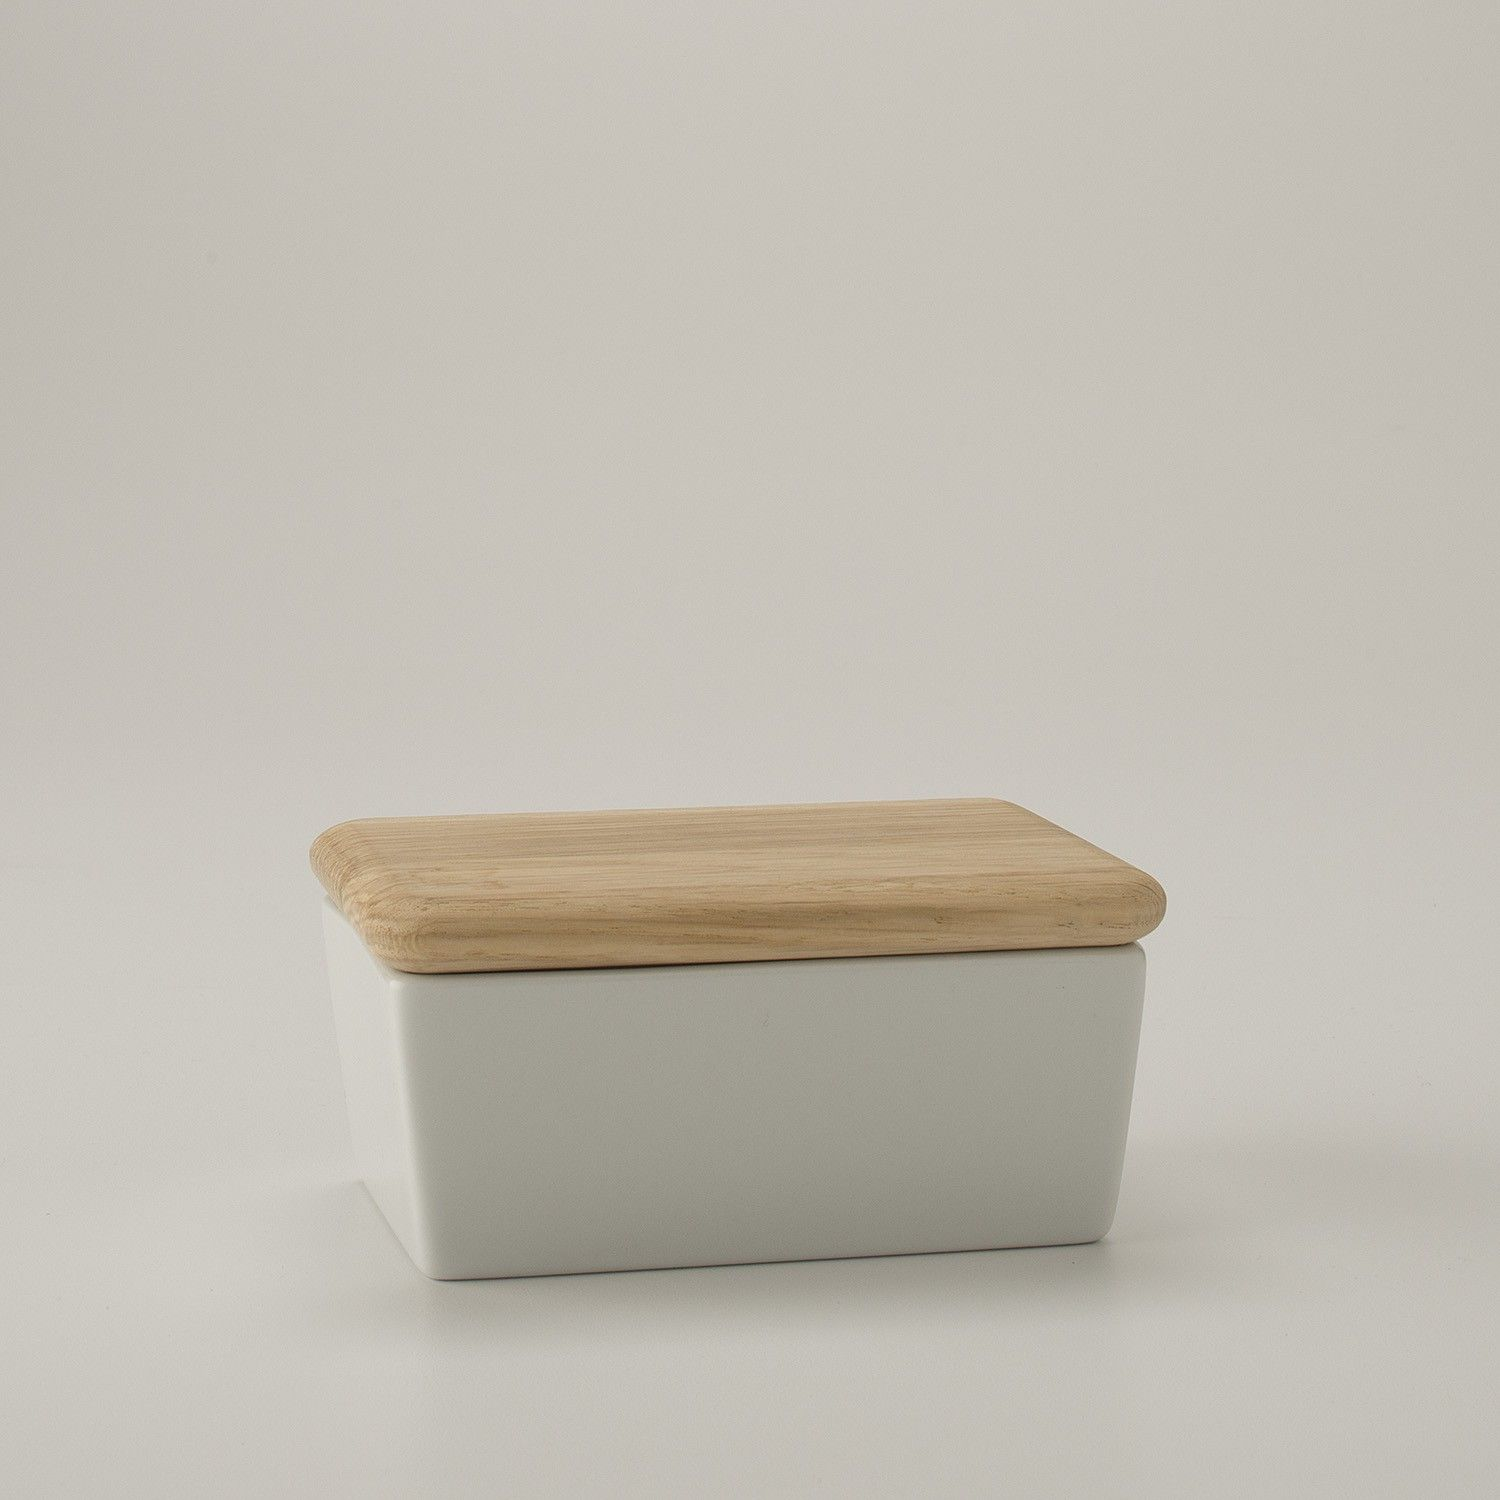 butter dish with oak lid  accessories  dining  kitchen  - butter dish with oak lid  accessories  dining  kitchen